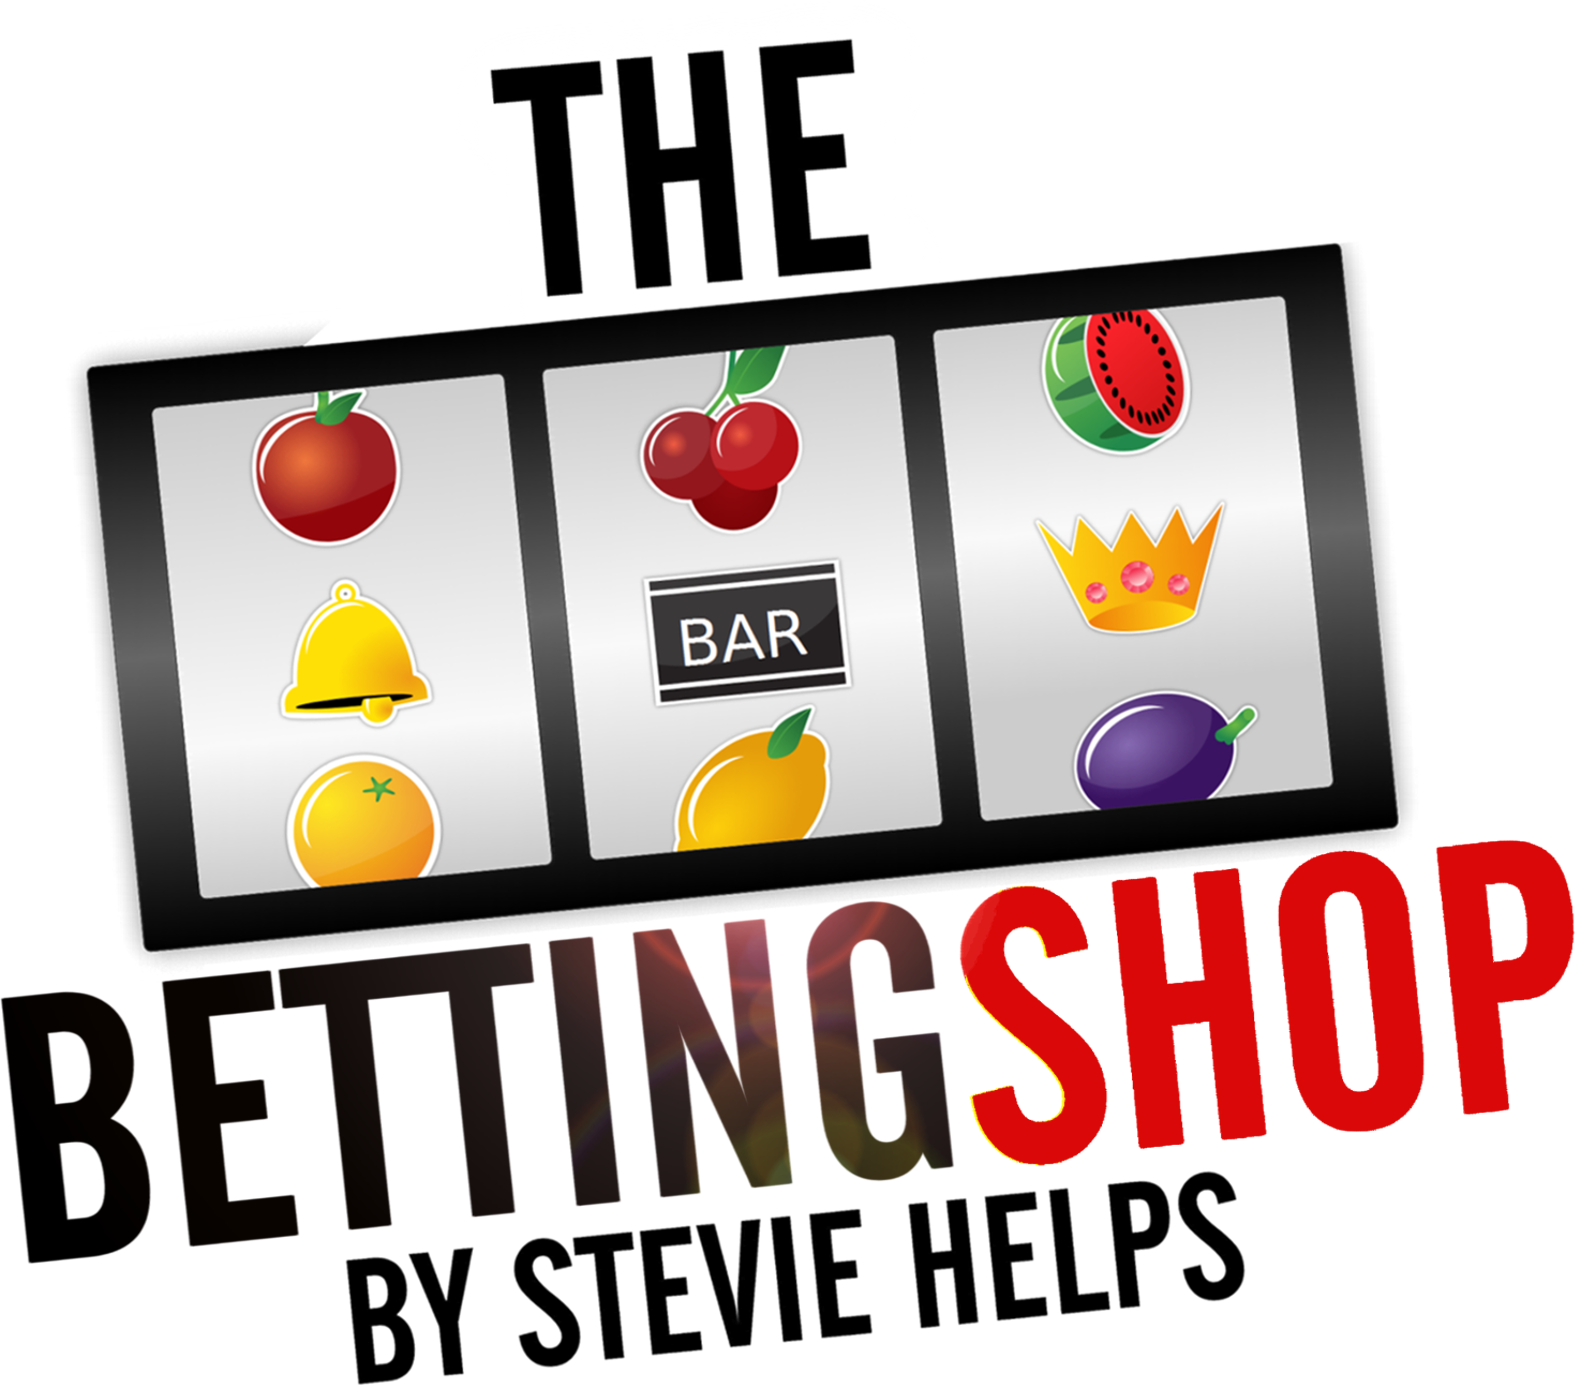 'THE BETTING SHOP' Premiers at THE LOWRY in 2019